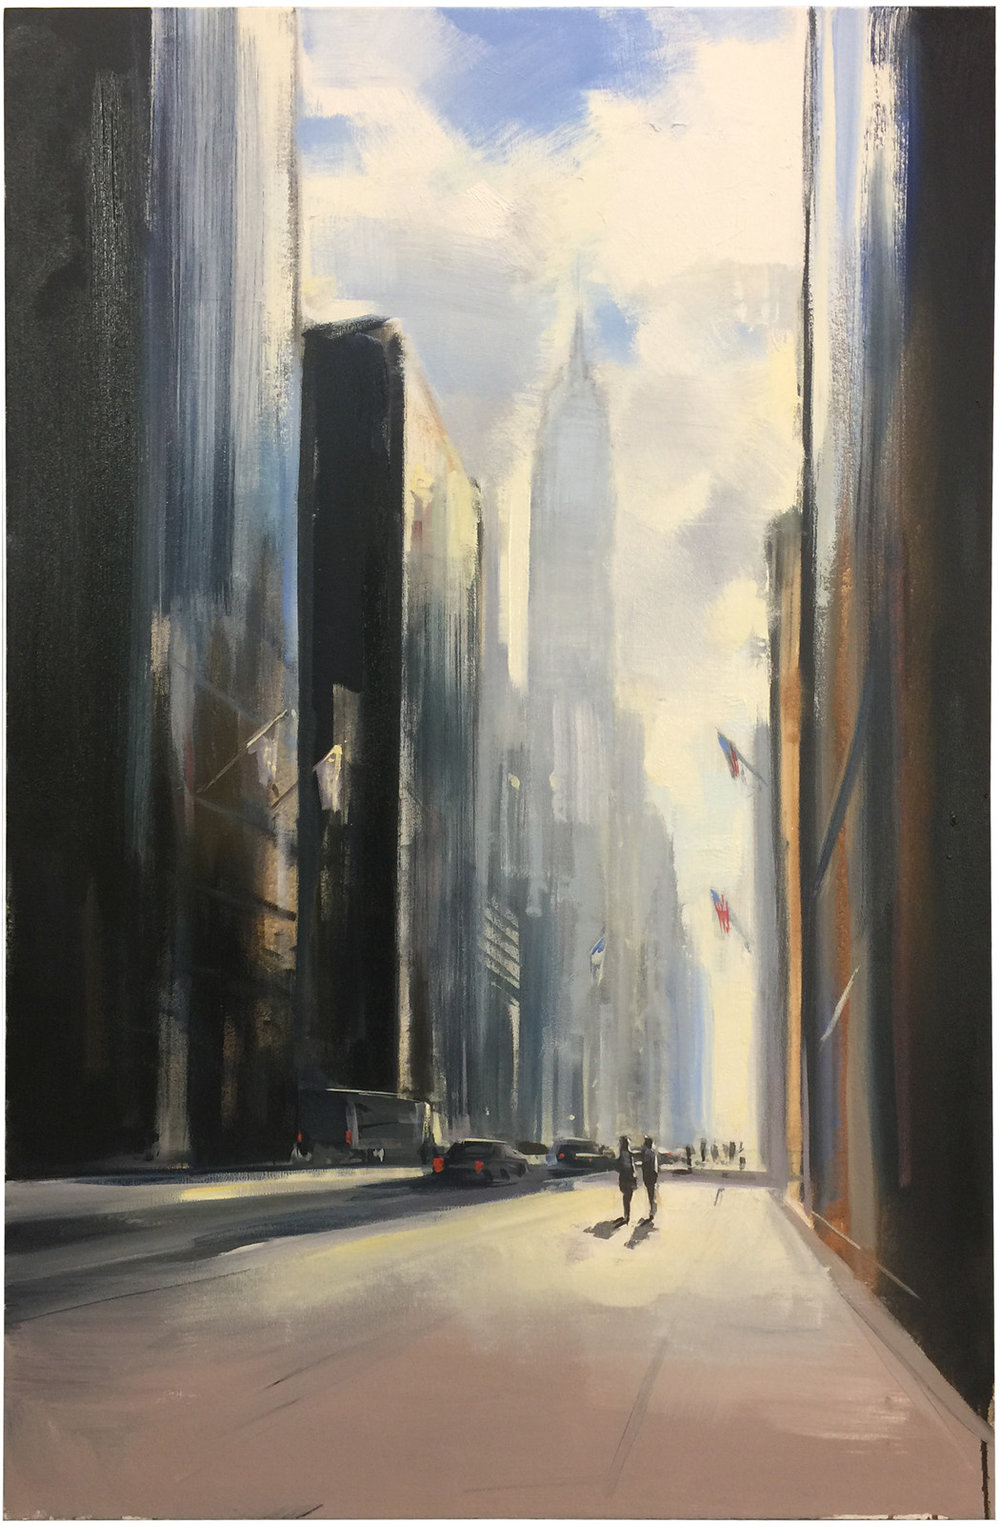 City Shadows oil on canvas 52 x 34 inches